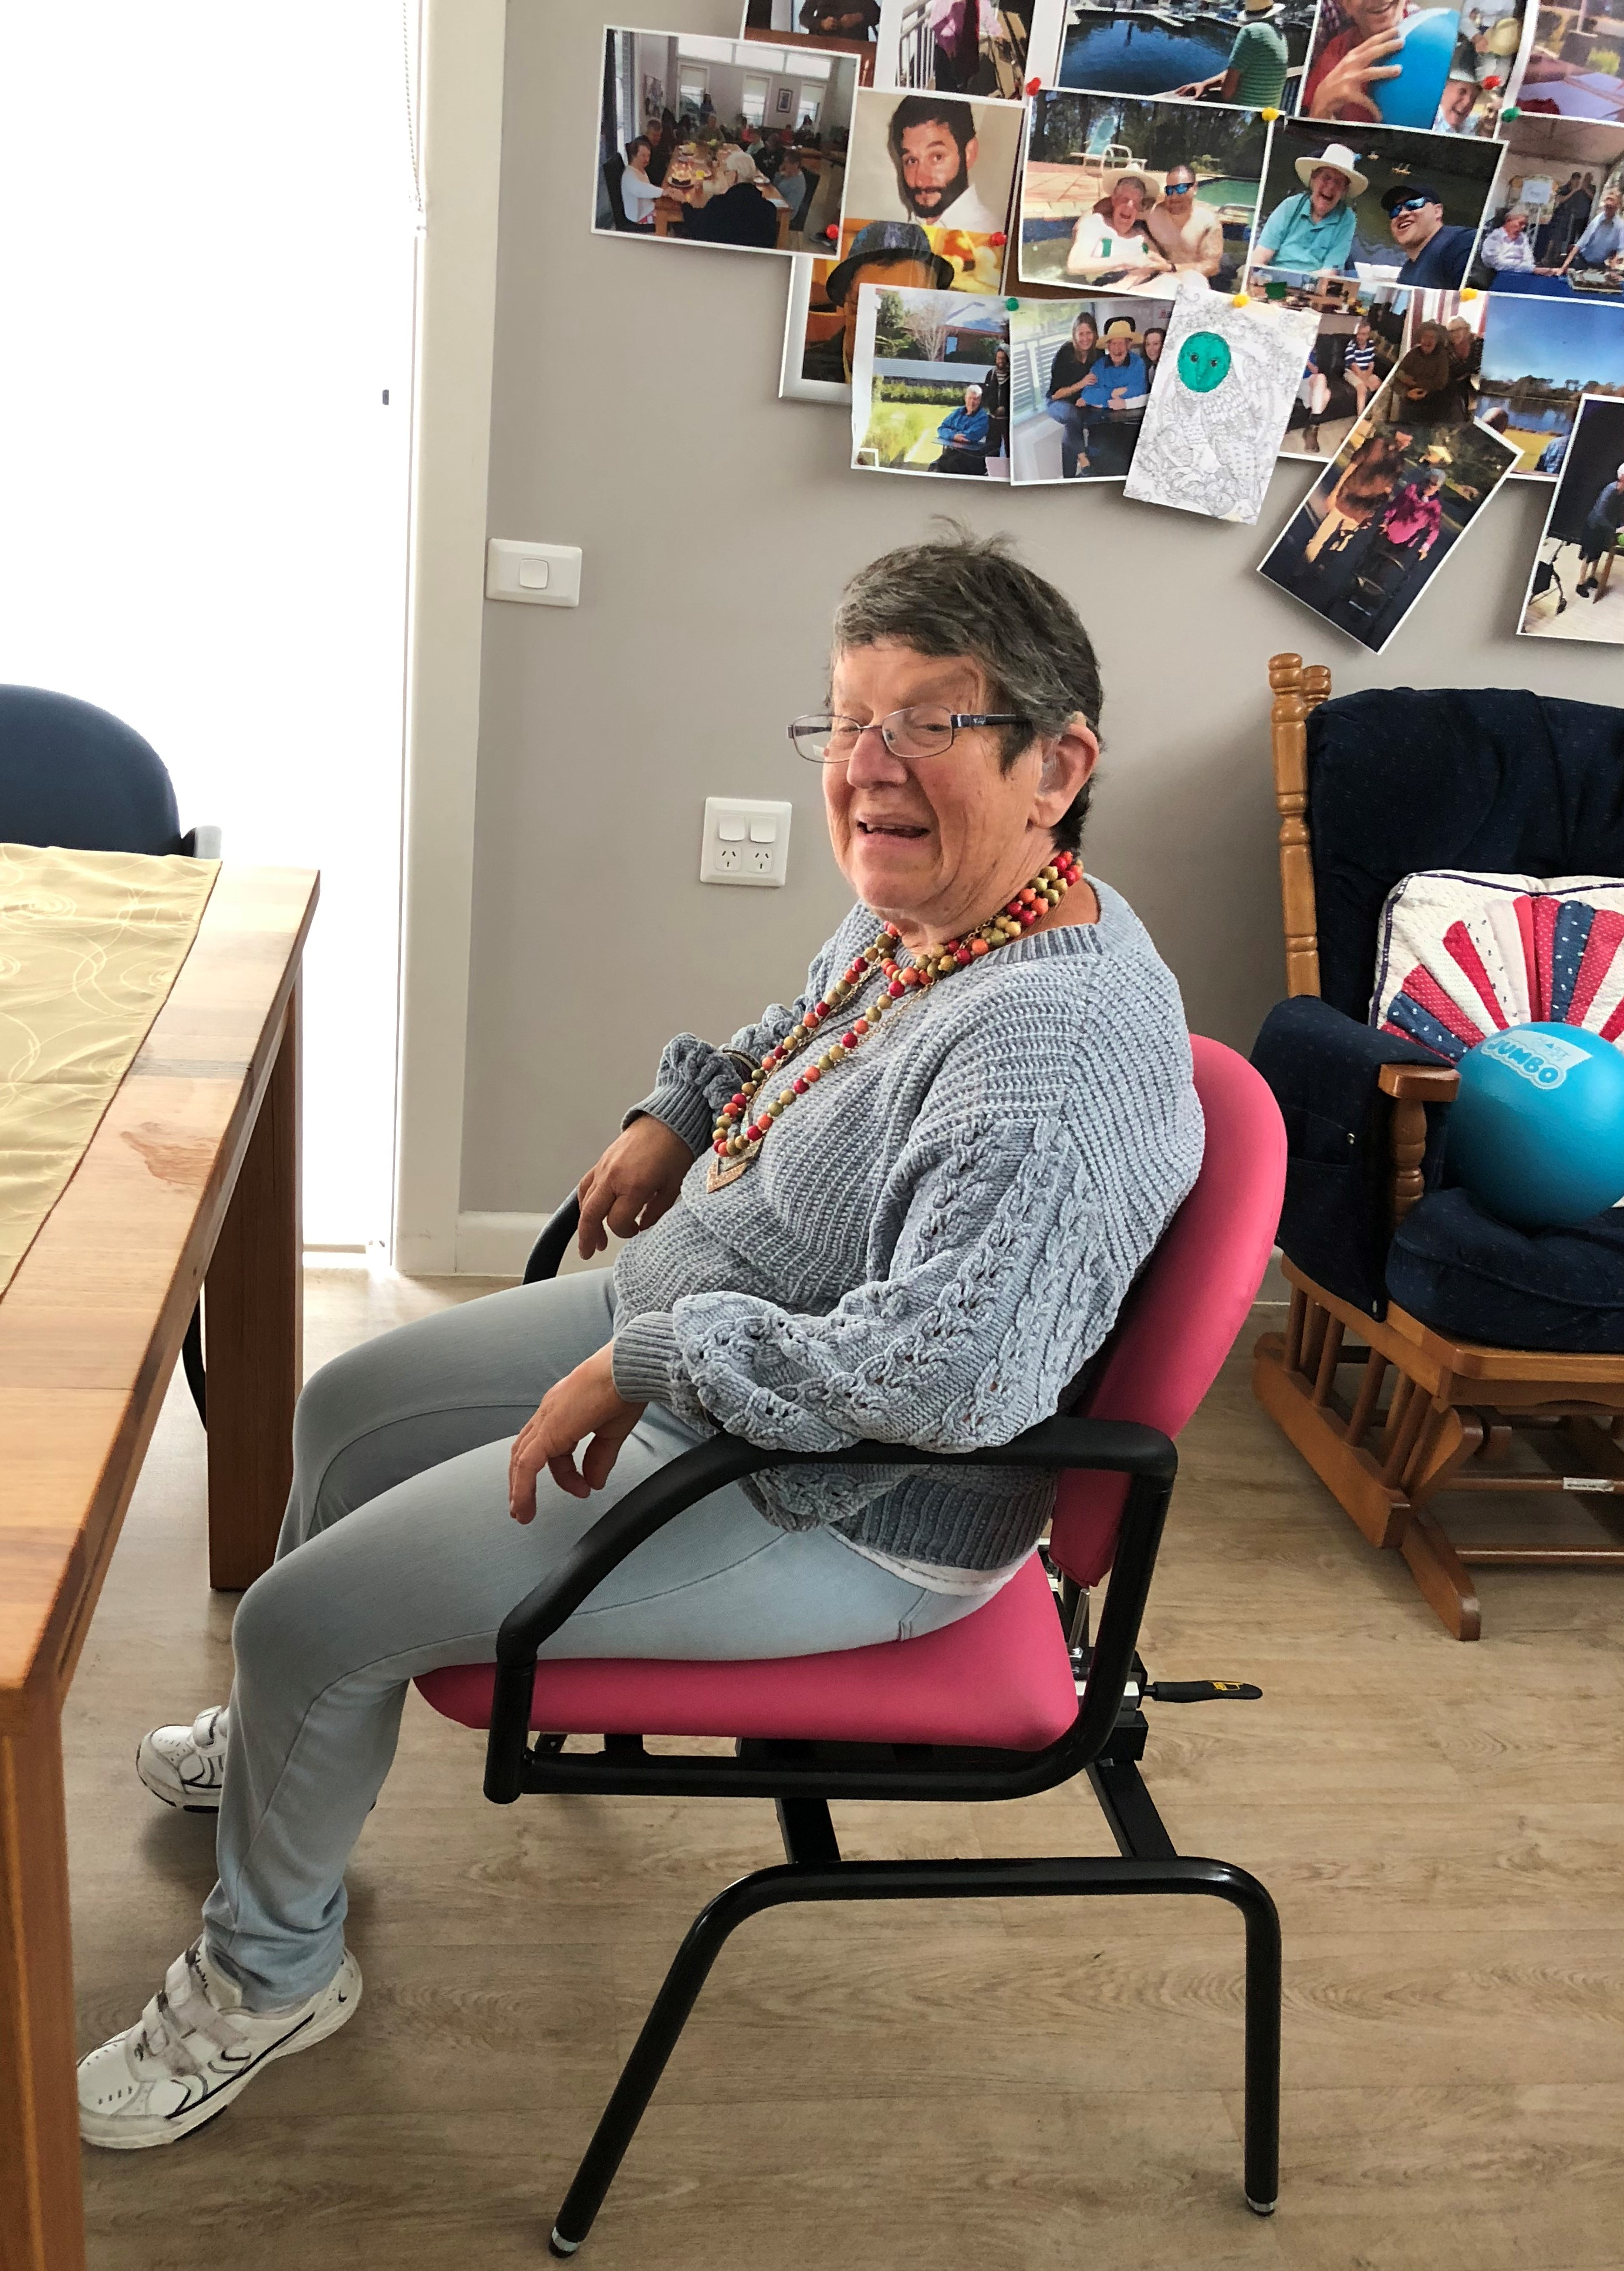 Revolution Chair supplied by Beecroft Rotary for the disabled clients in Inala